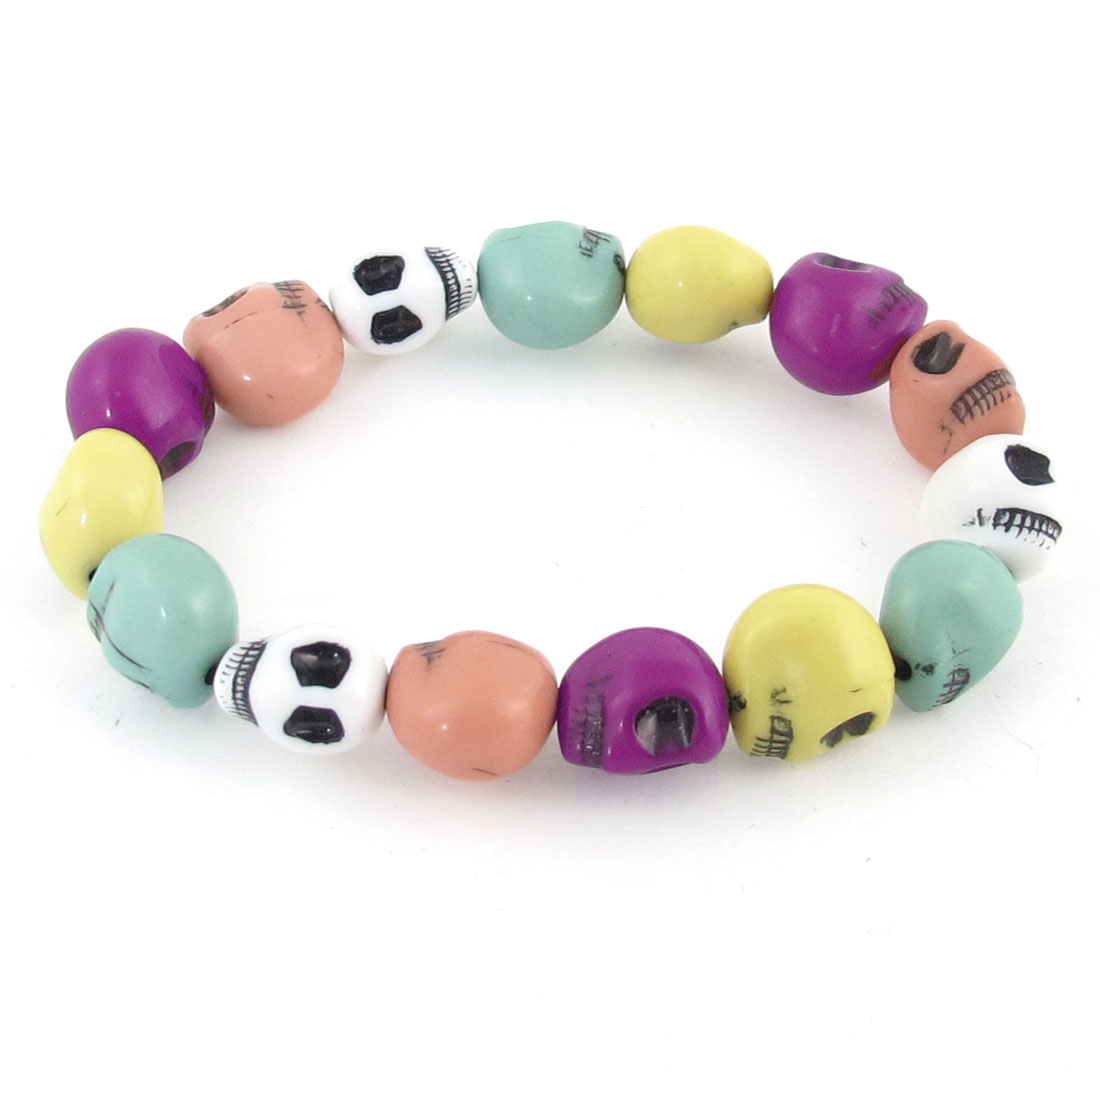 Colorful Skull Head Design Beads Stretchy Chain Bracelet for Ladies